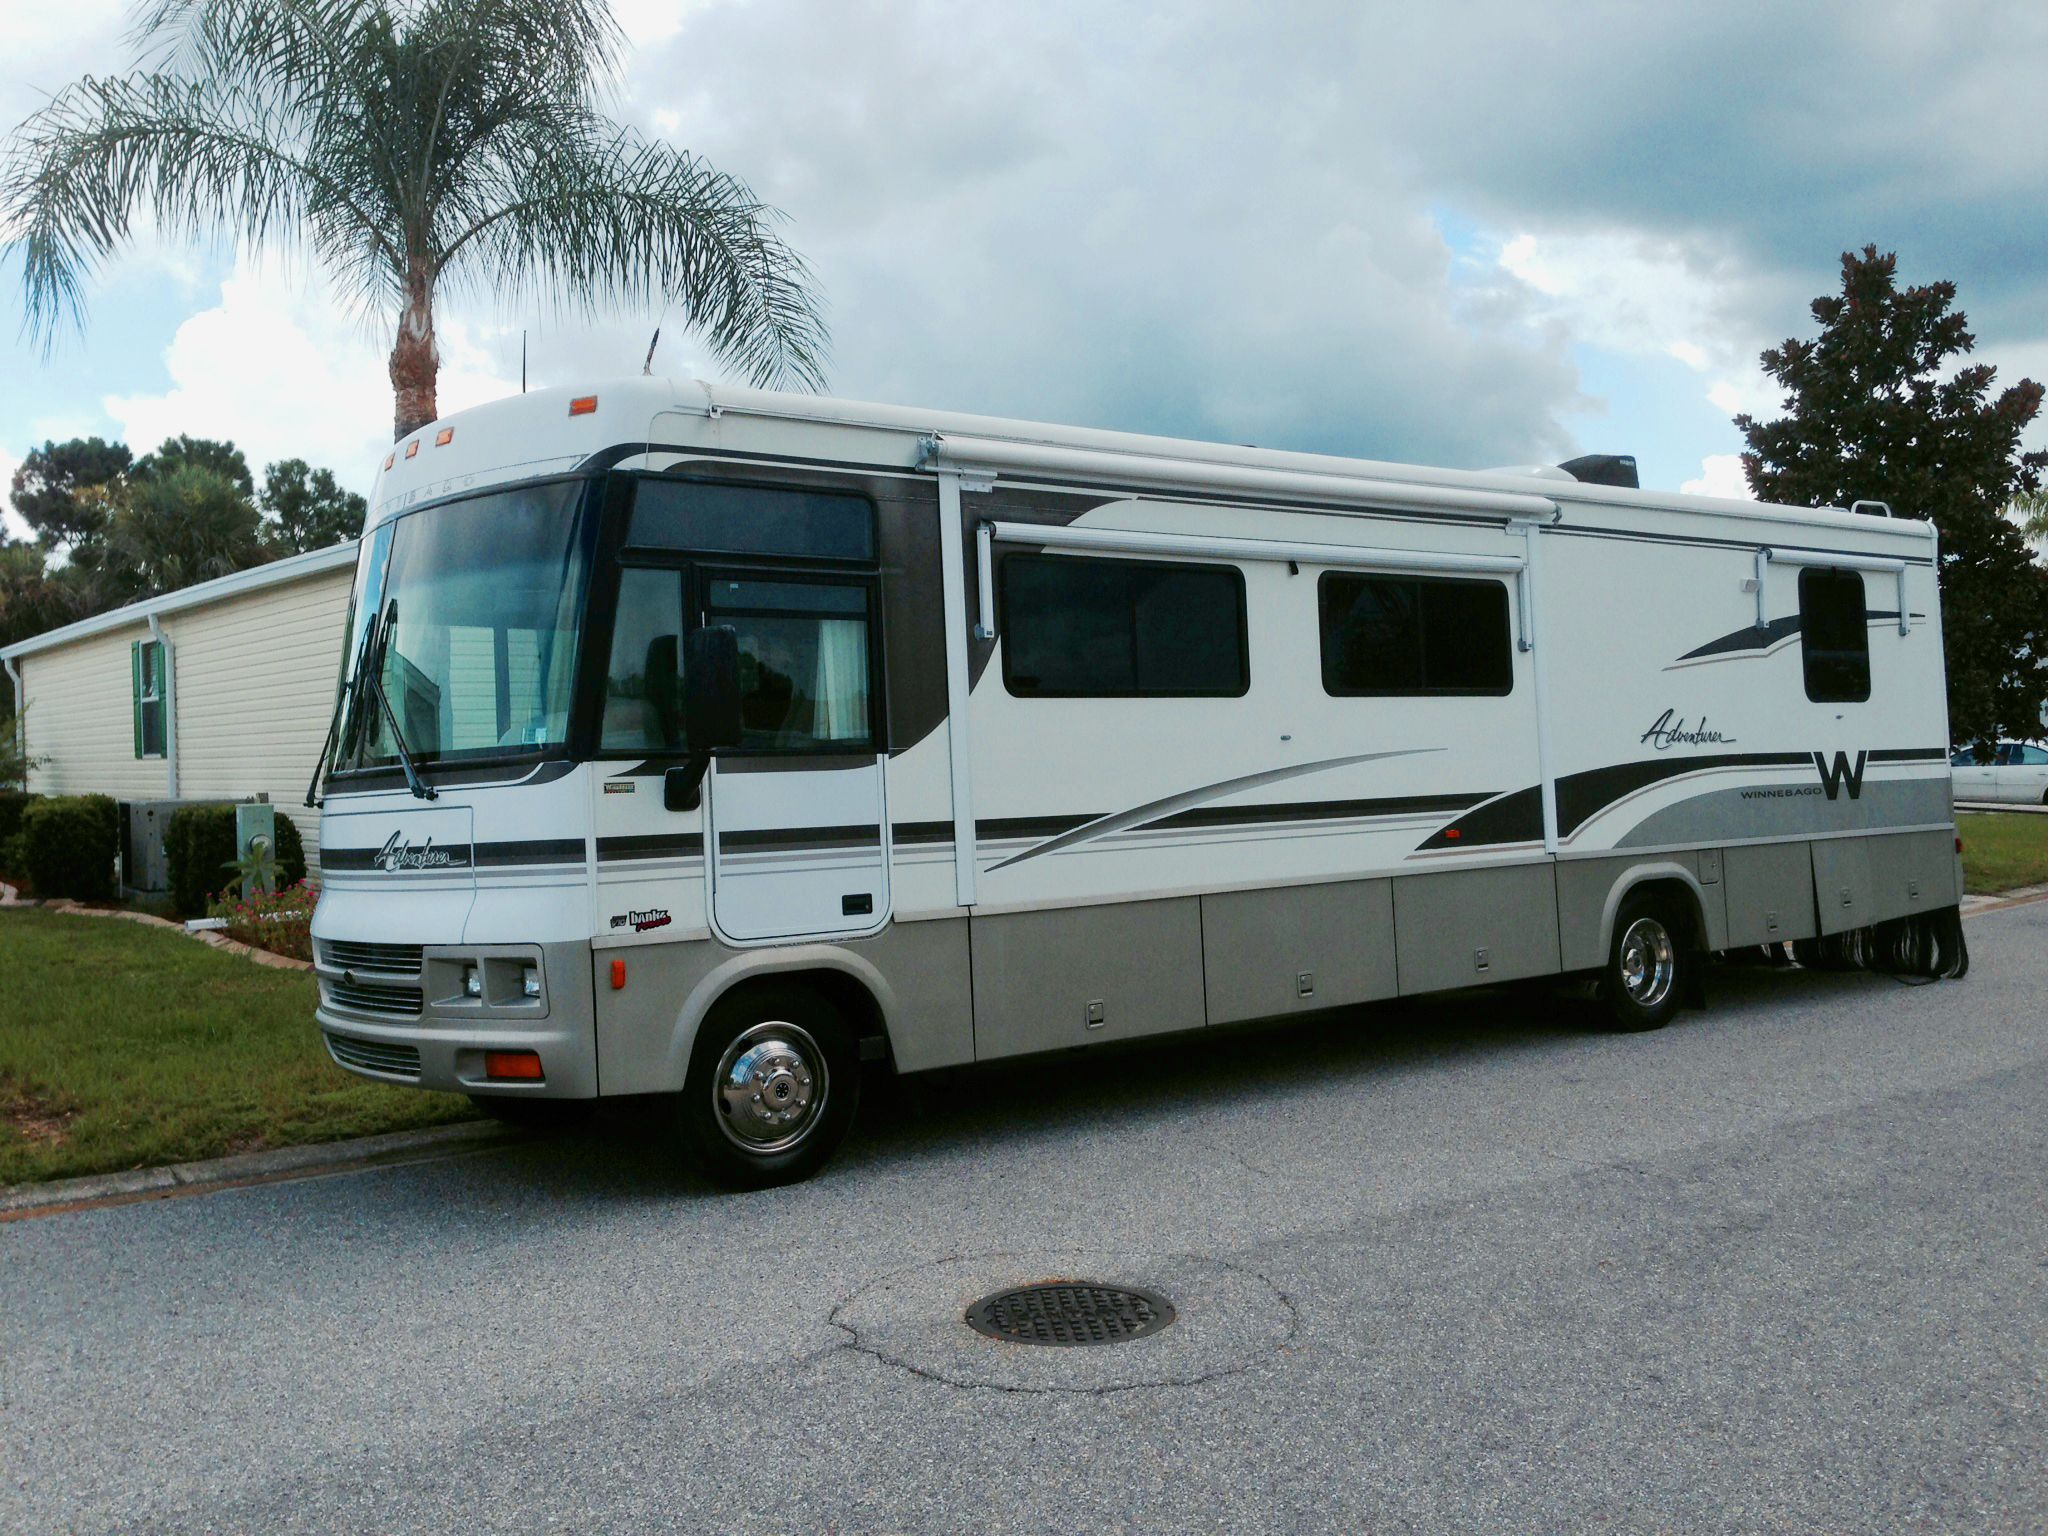 Retro Rv How To Save Money Buying A Used Motorhome And Upgrading It Your Way Motorhome Buy Used Cars Retro Rv